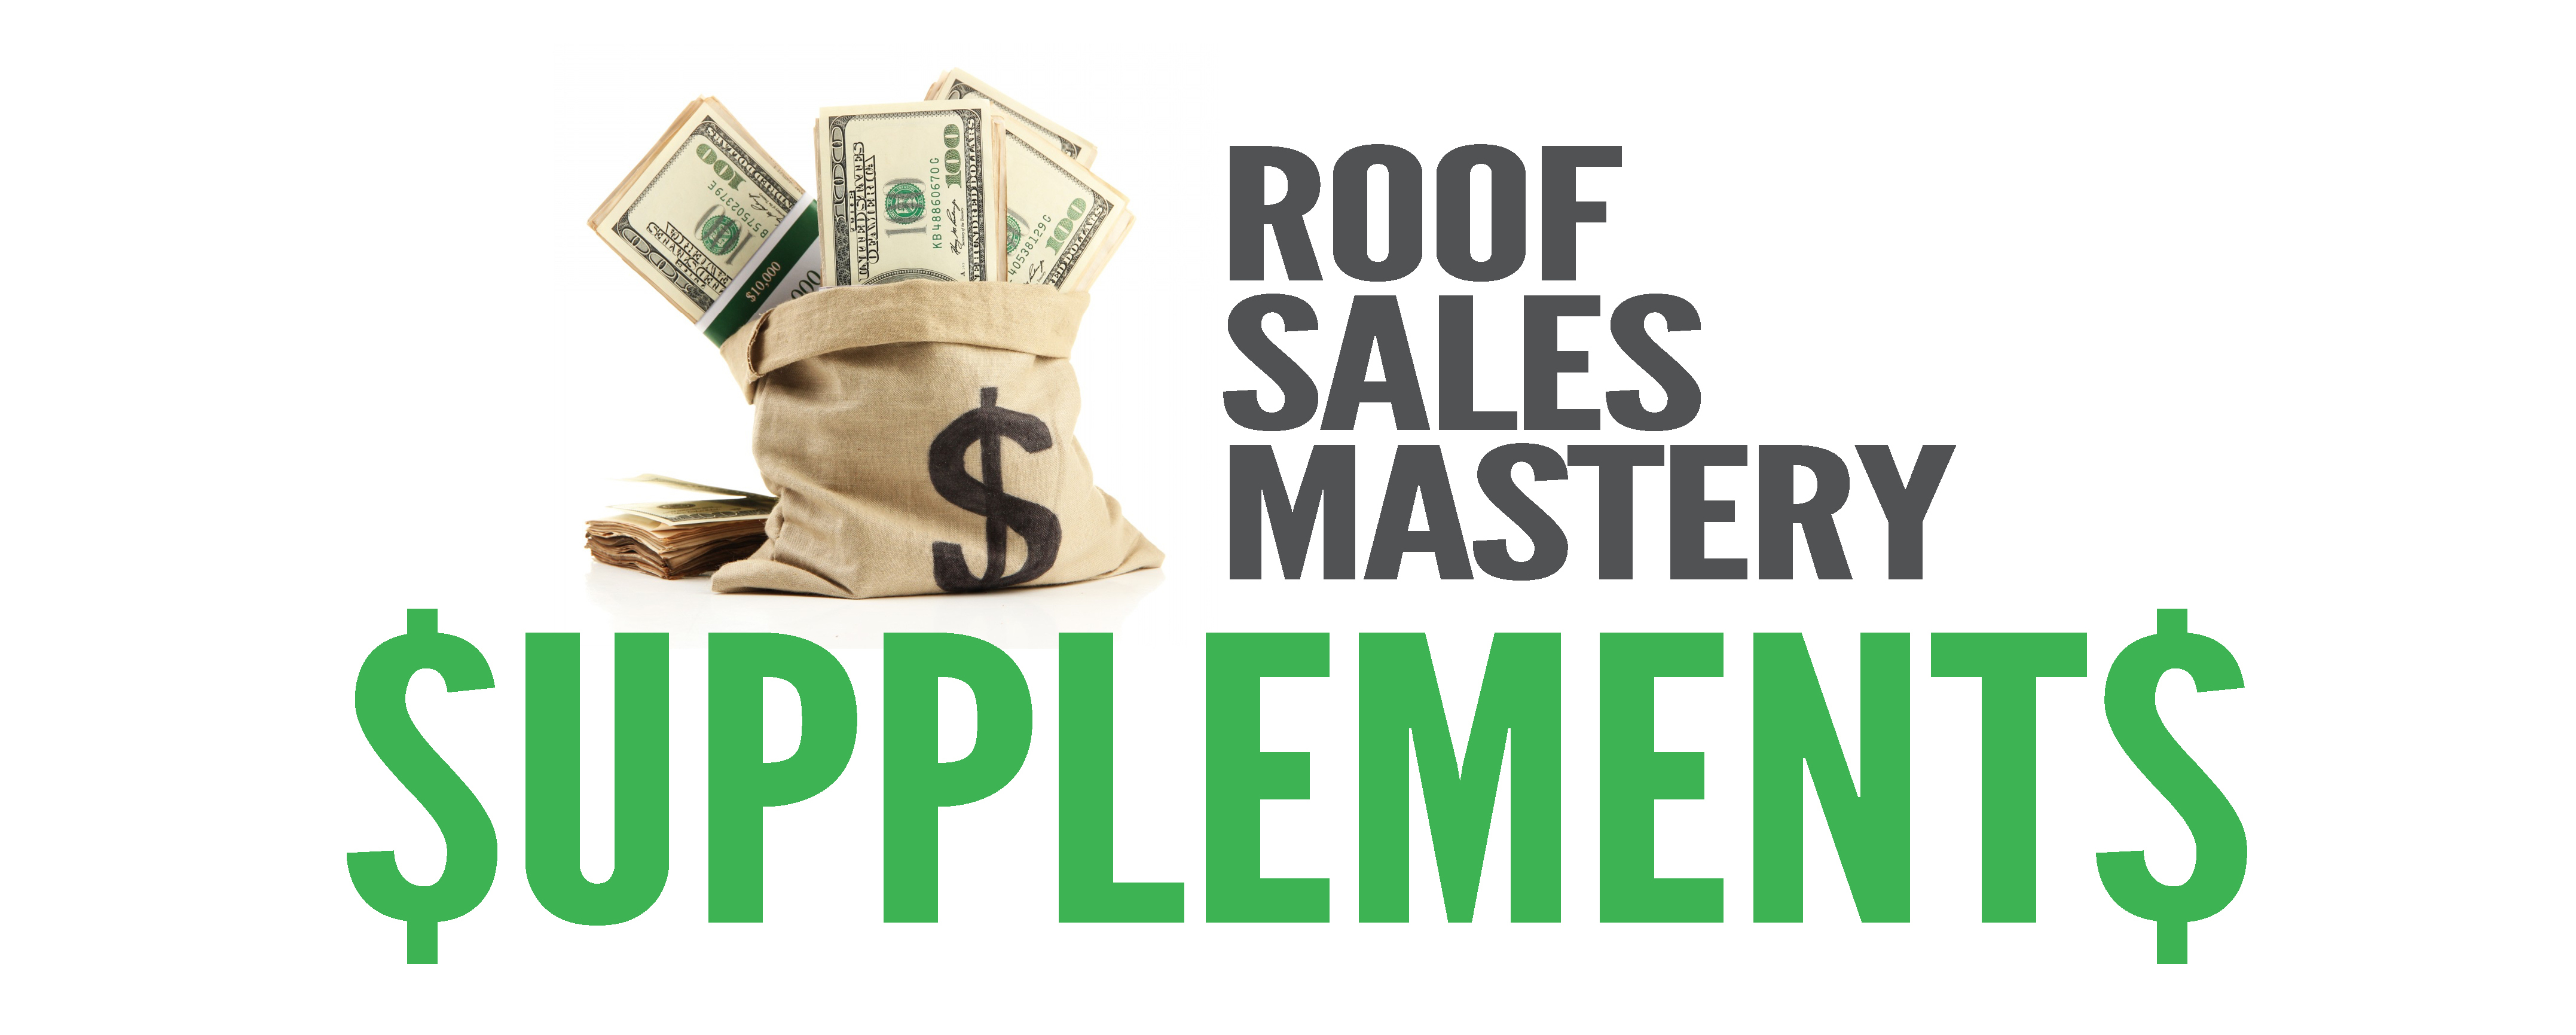 Roof Sales Mastery -